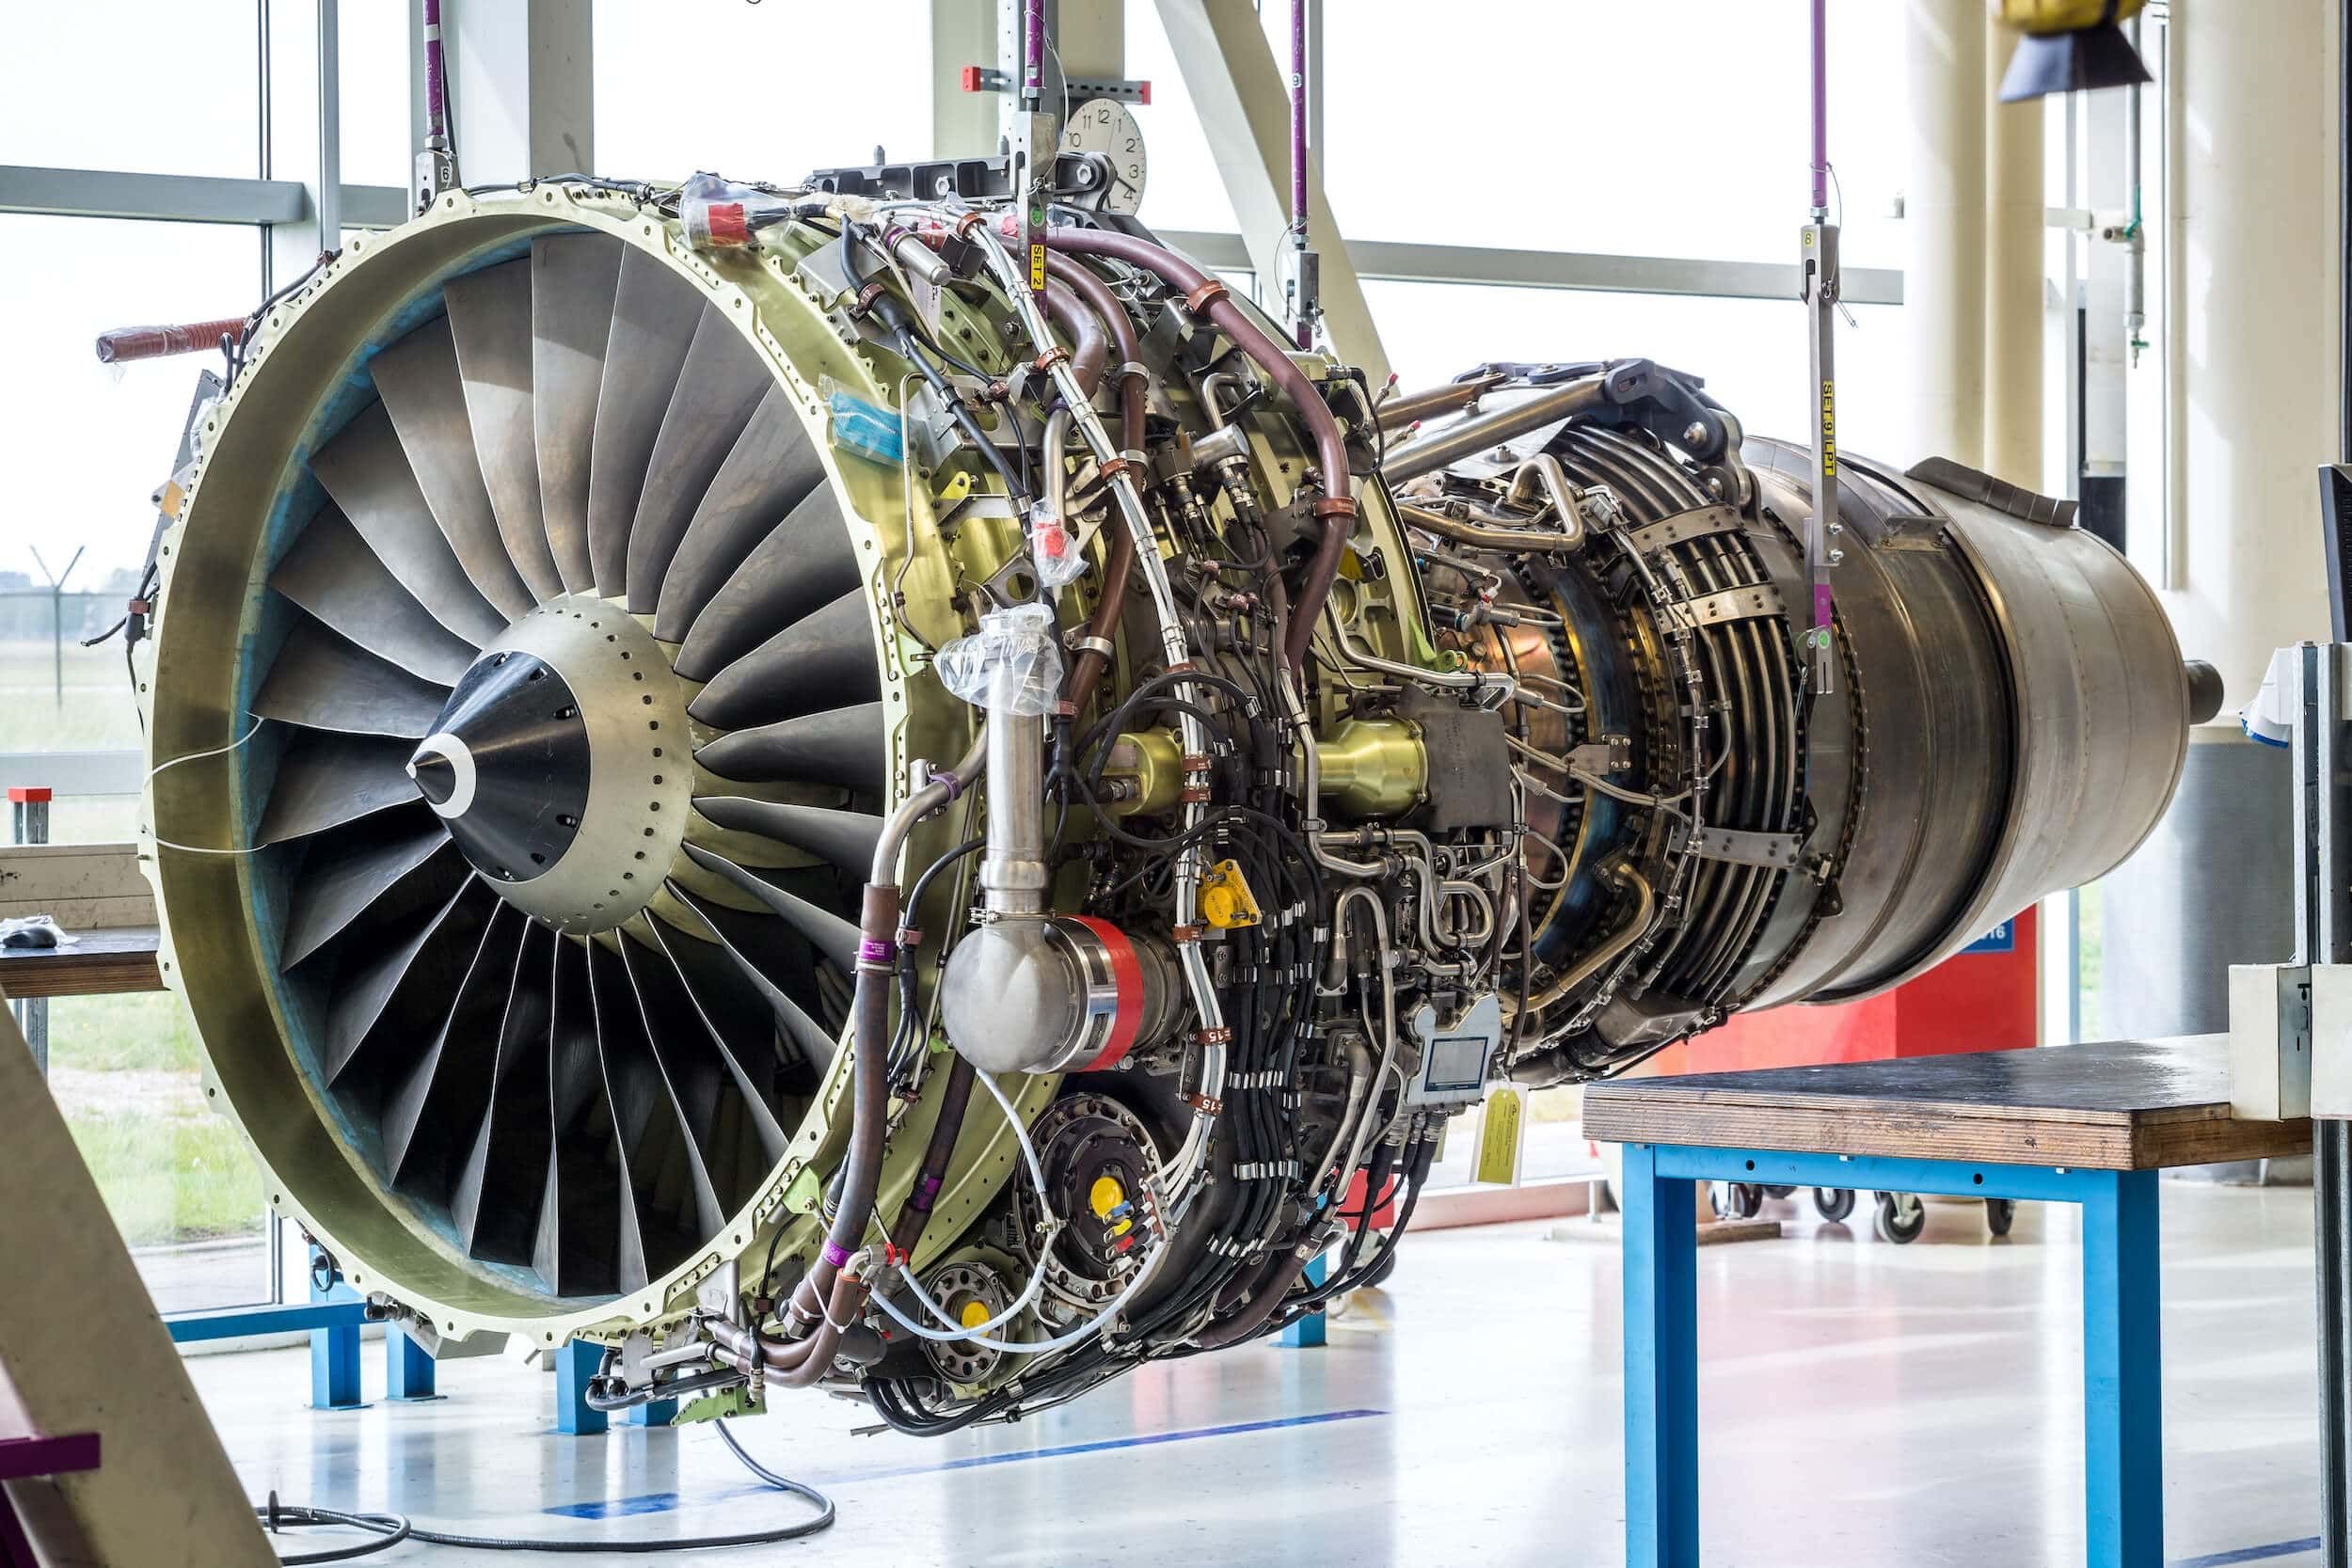 Jet Engine being Maintained in Hangar - Williams International engines